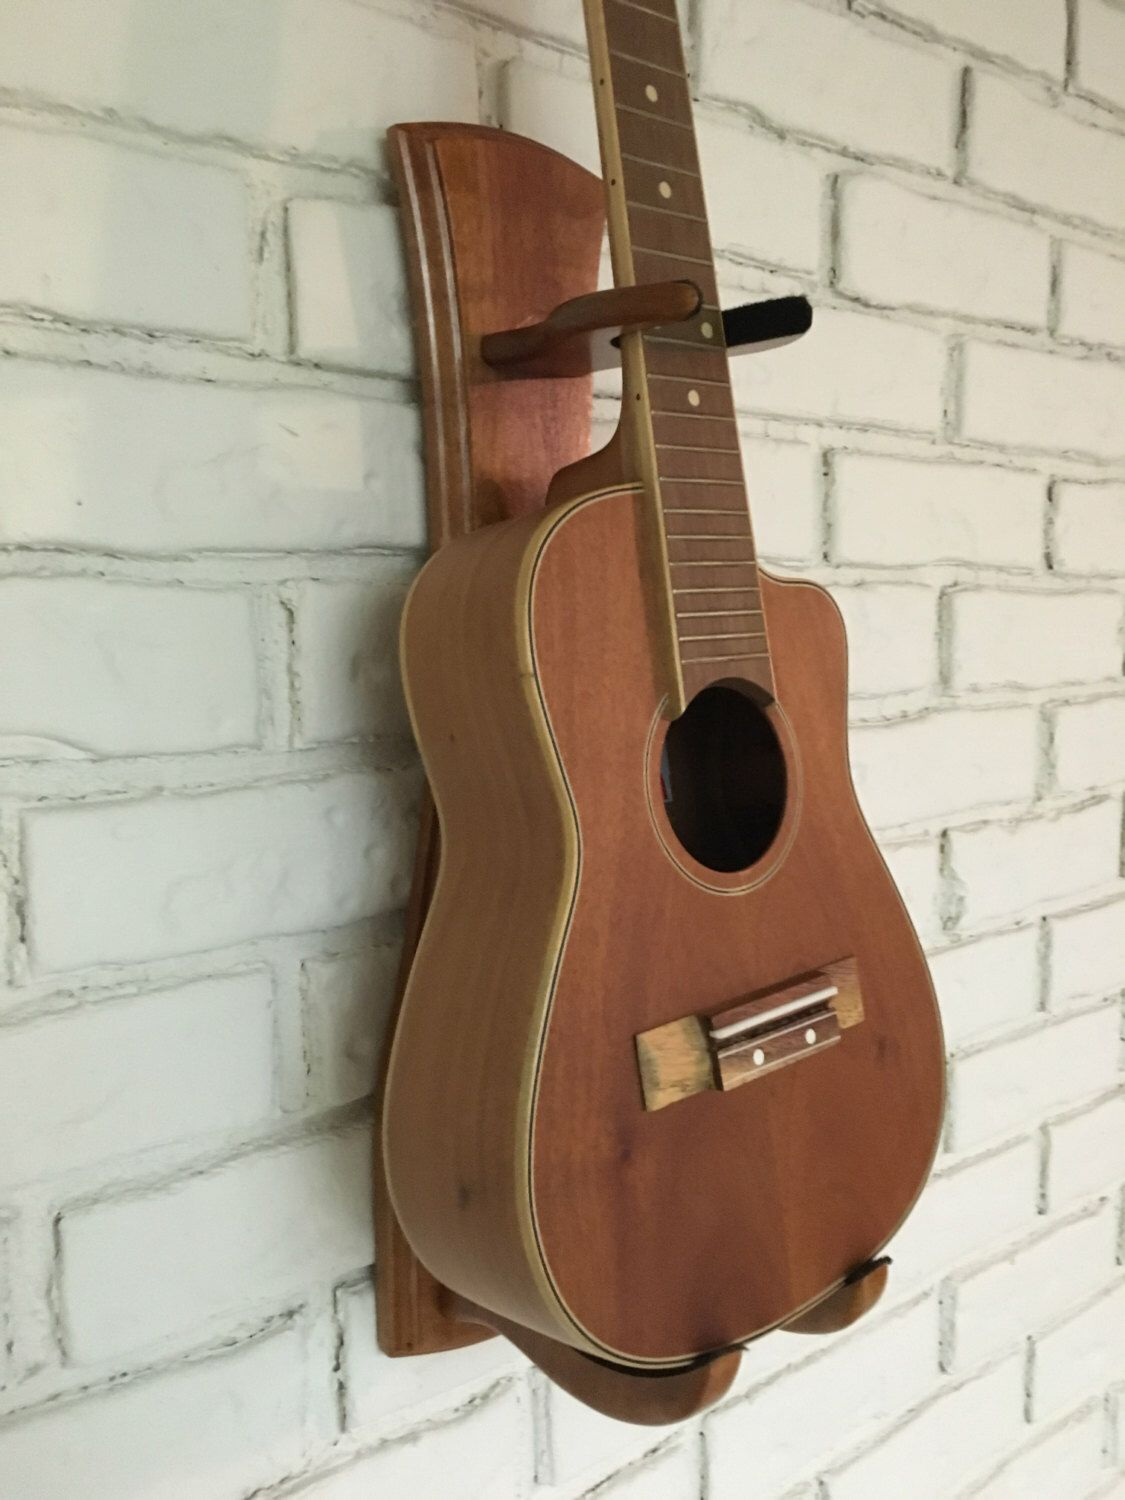 Mahogany Ukulele Wall Mount By Bordignonguitars On Etsy